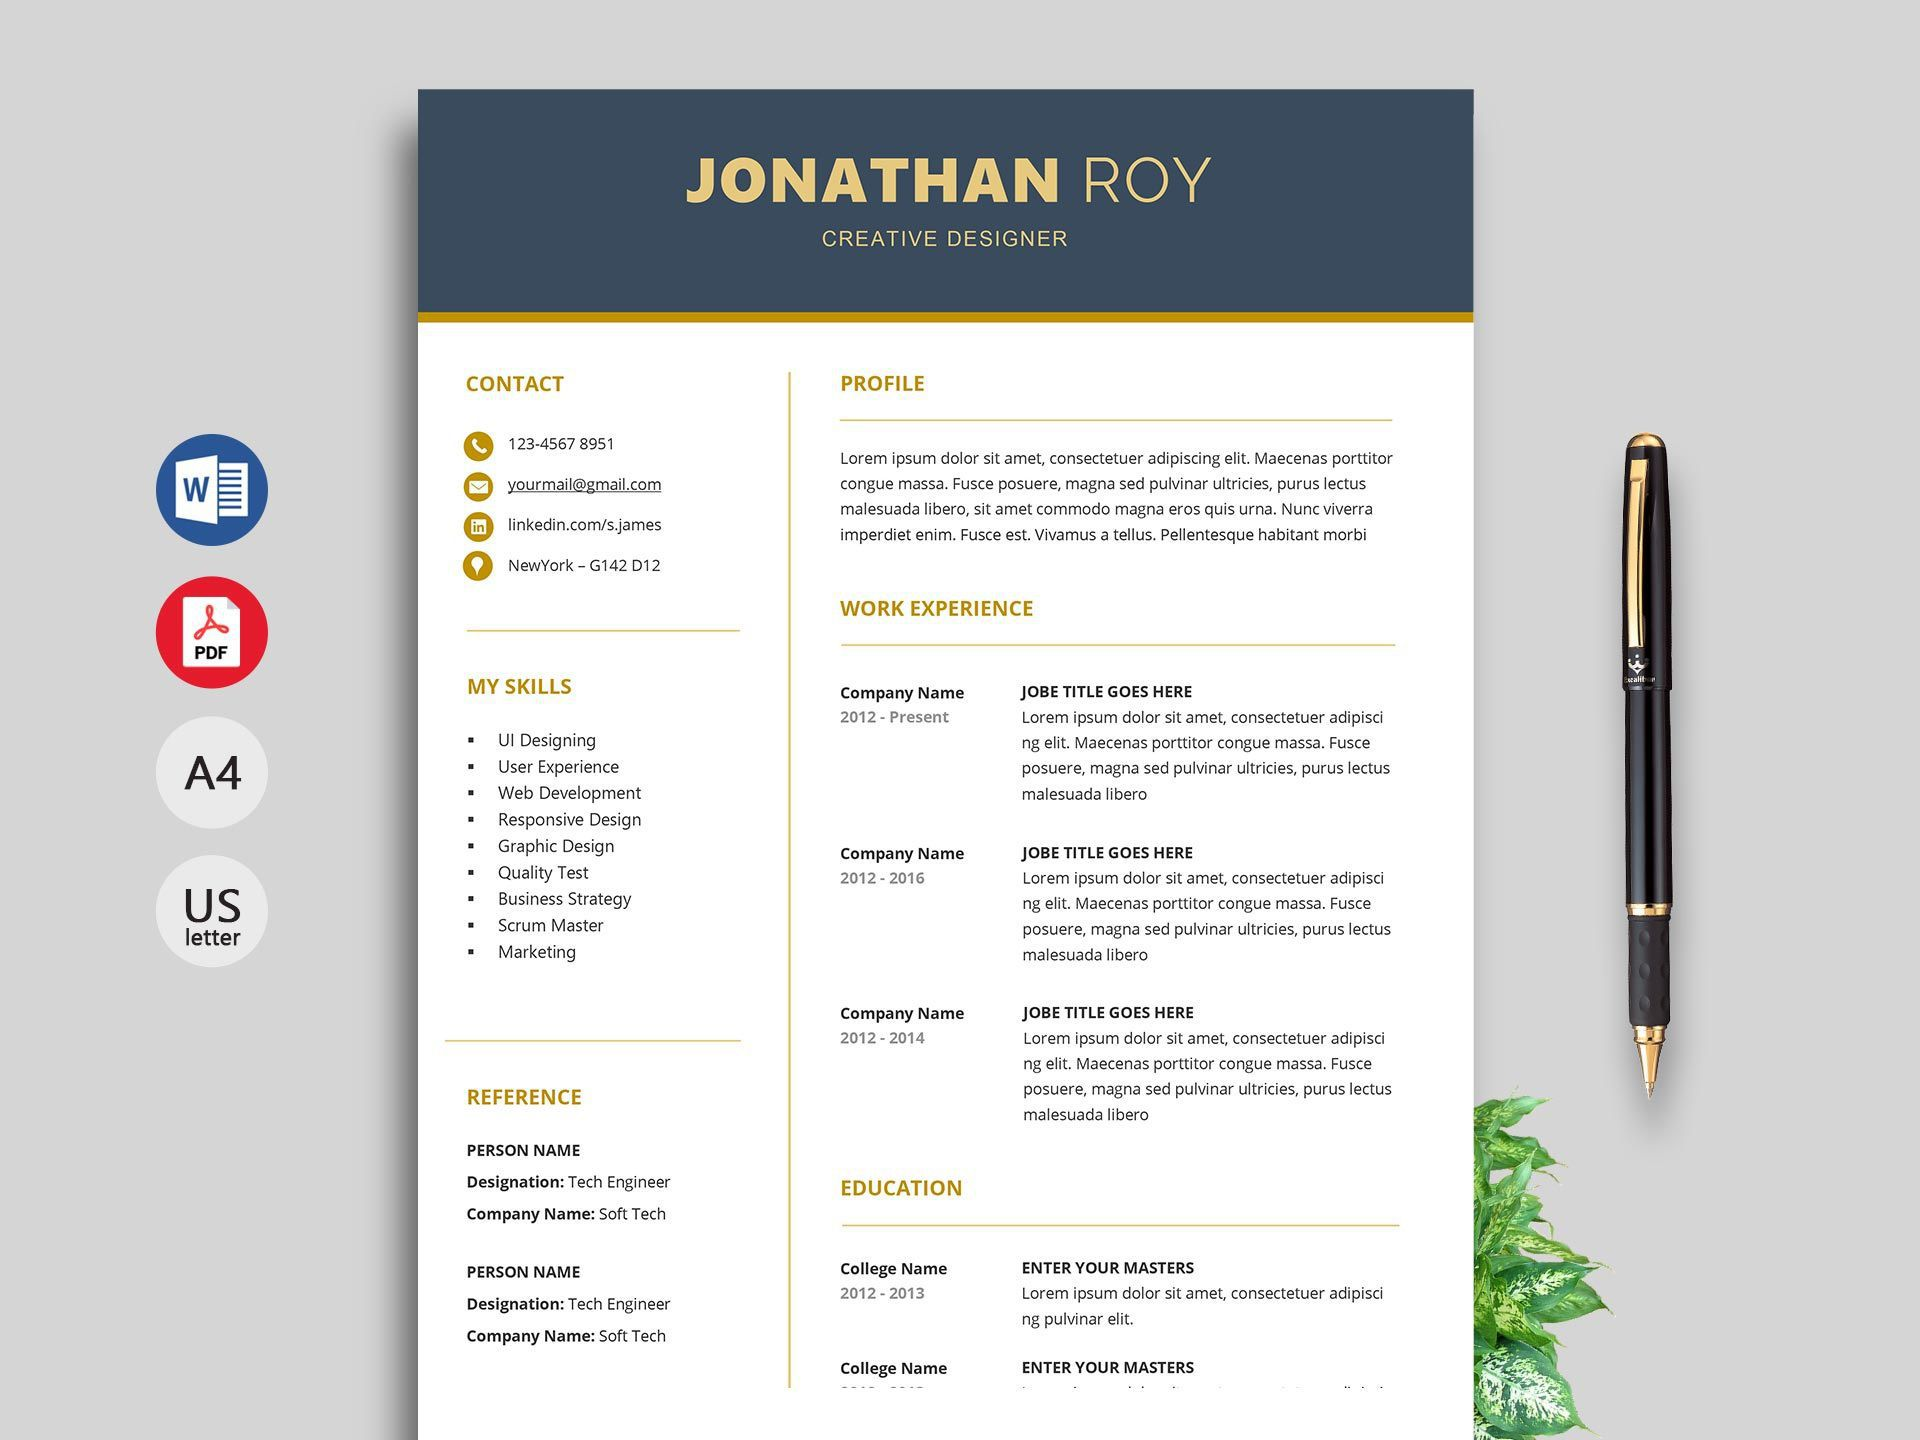 009 Unusual Download Resume Template Free Word Image  Attractive Microsoft Simple For CreativeFull